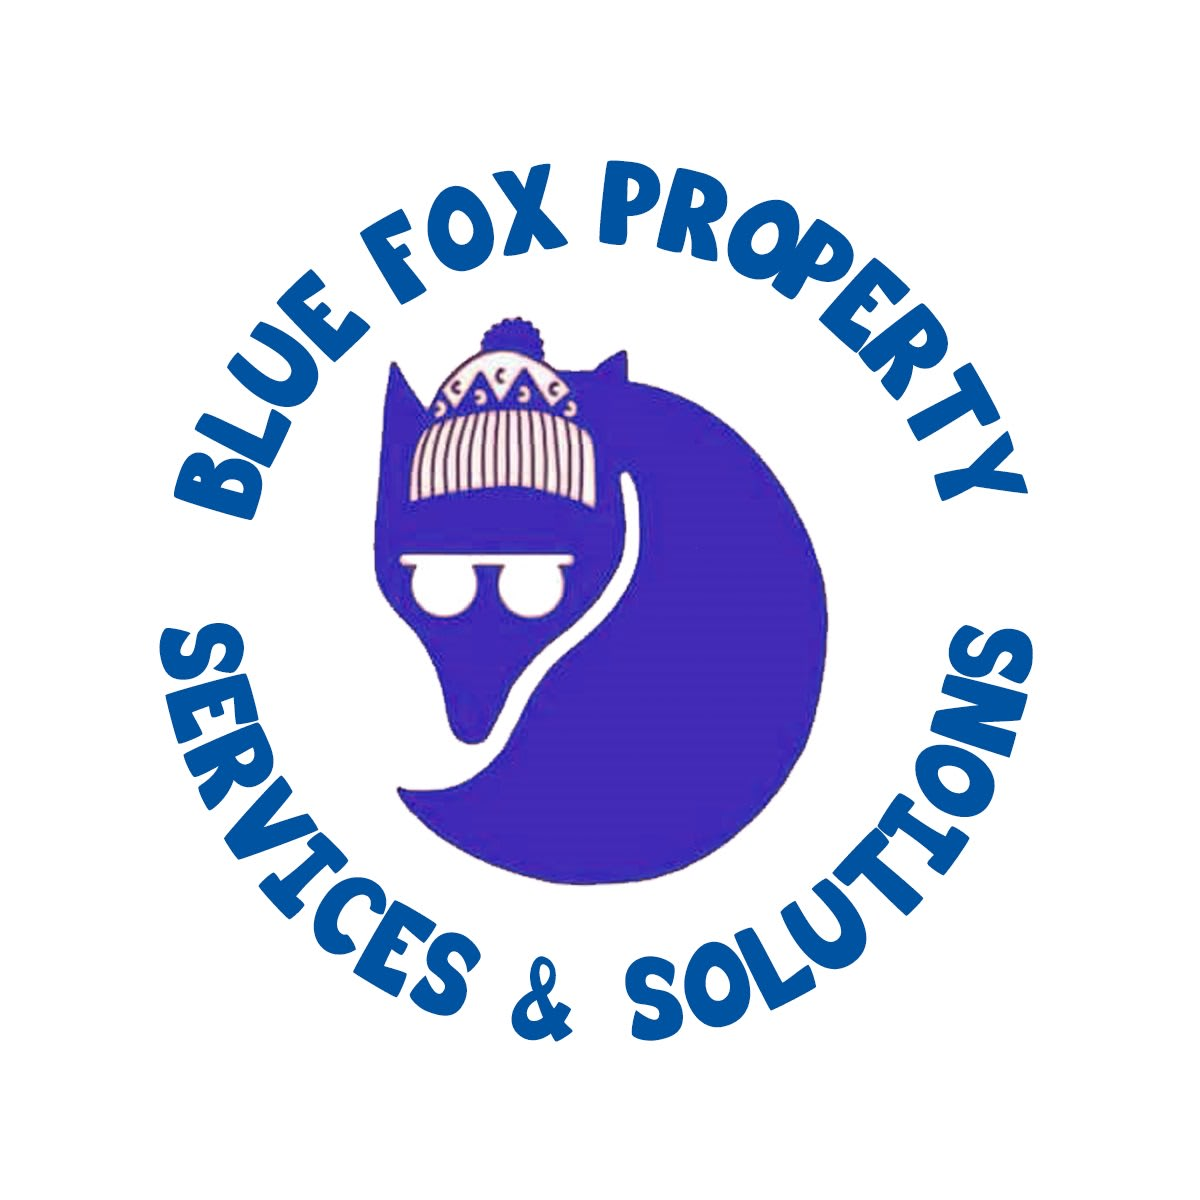 Blue Fox Property Services & Solutions - Leicester, Leicestershire LE3 1HR - 07592 434772 | ShowMeLocal.com